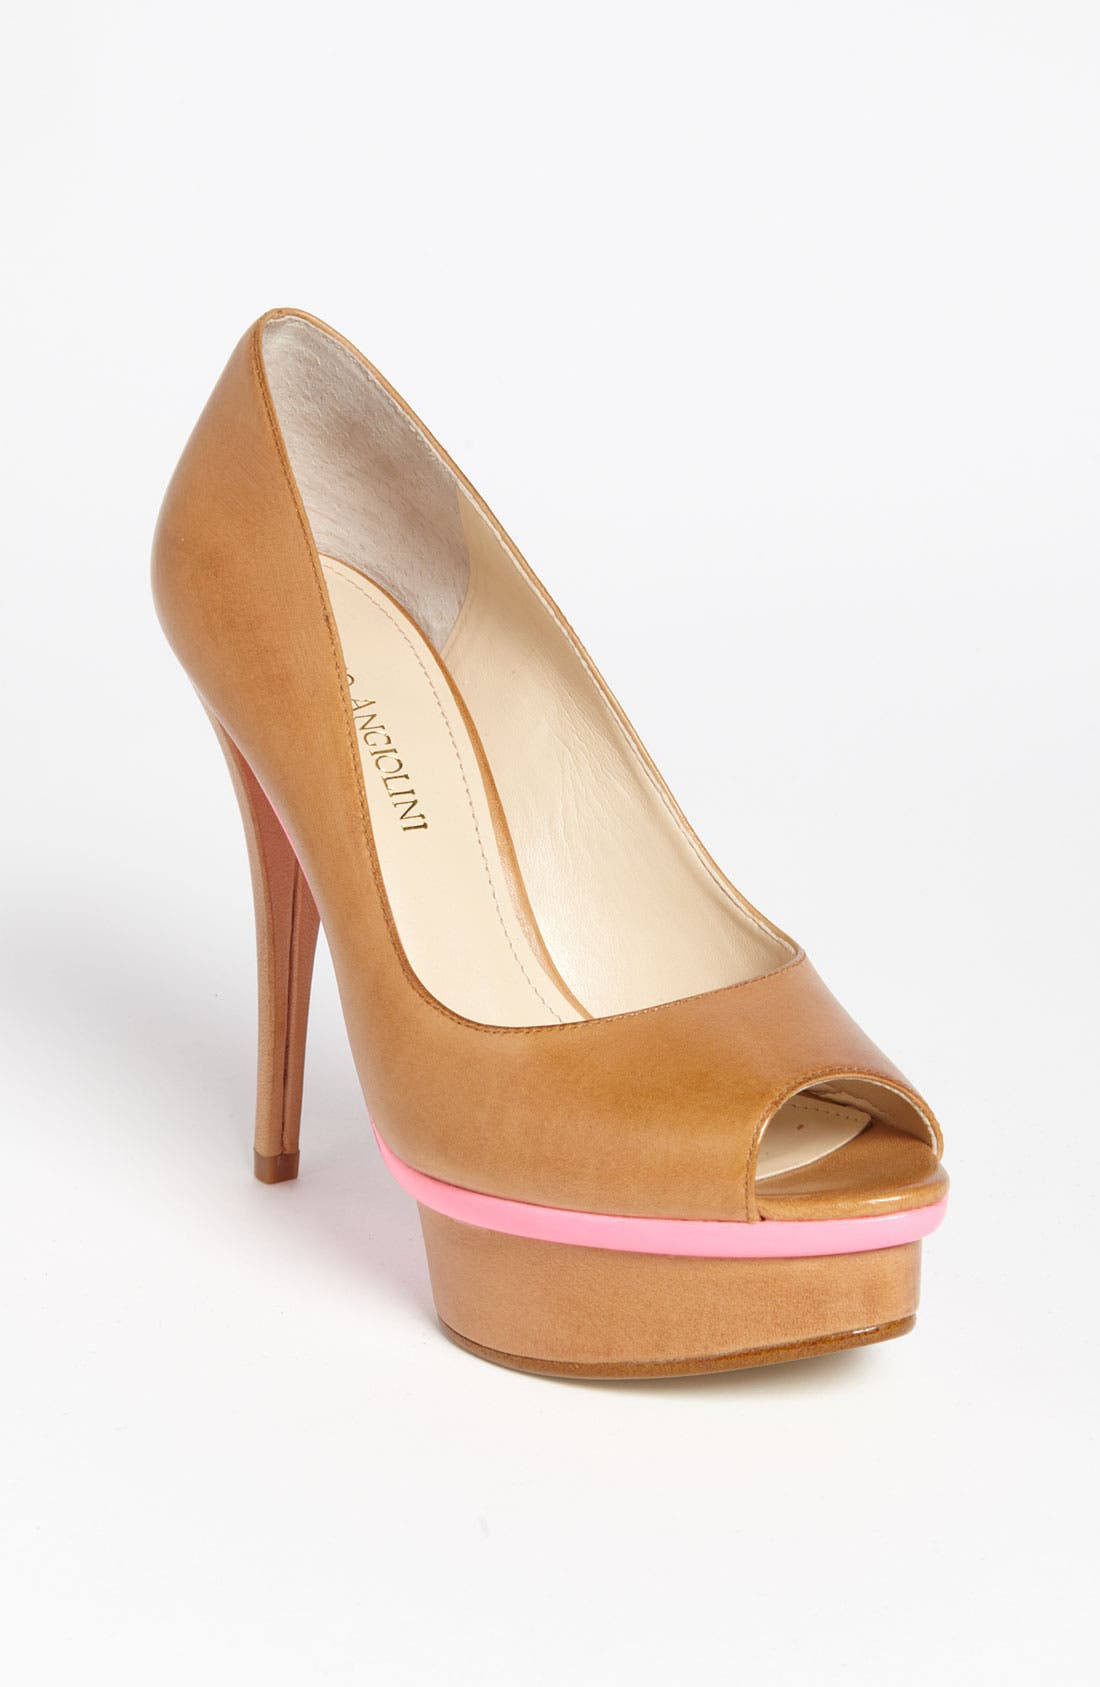 Main Image - Enzo Angiolini 'Love U Too' Pump